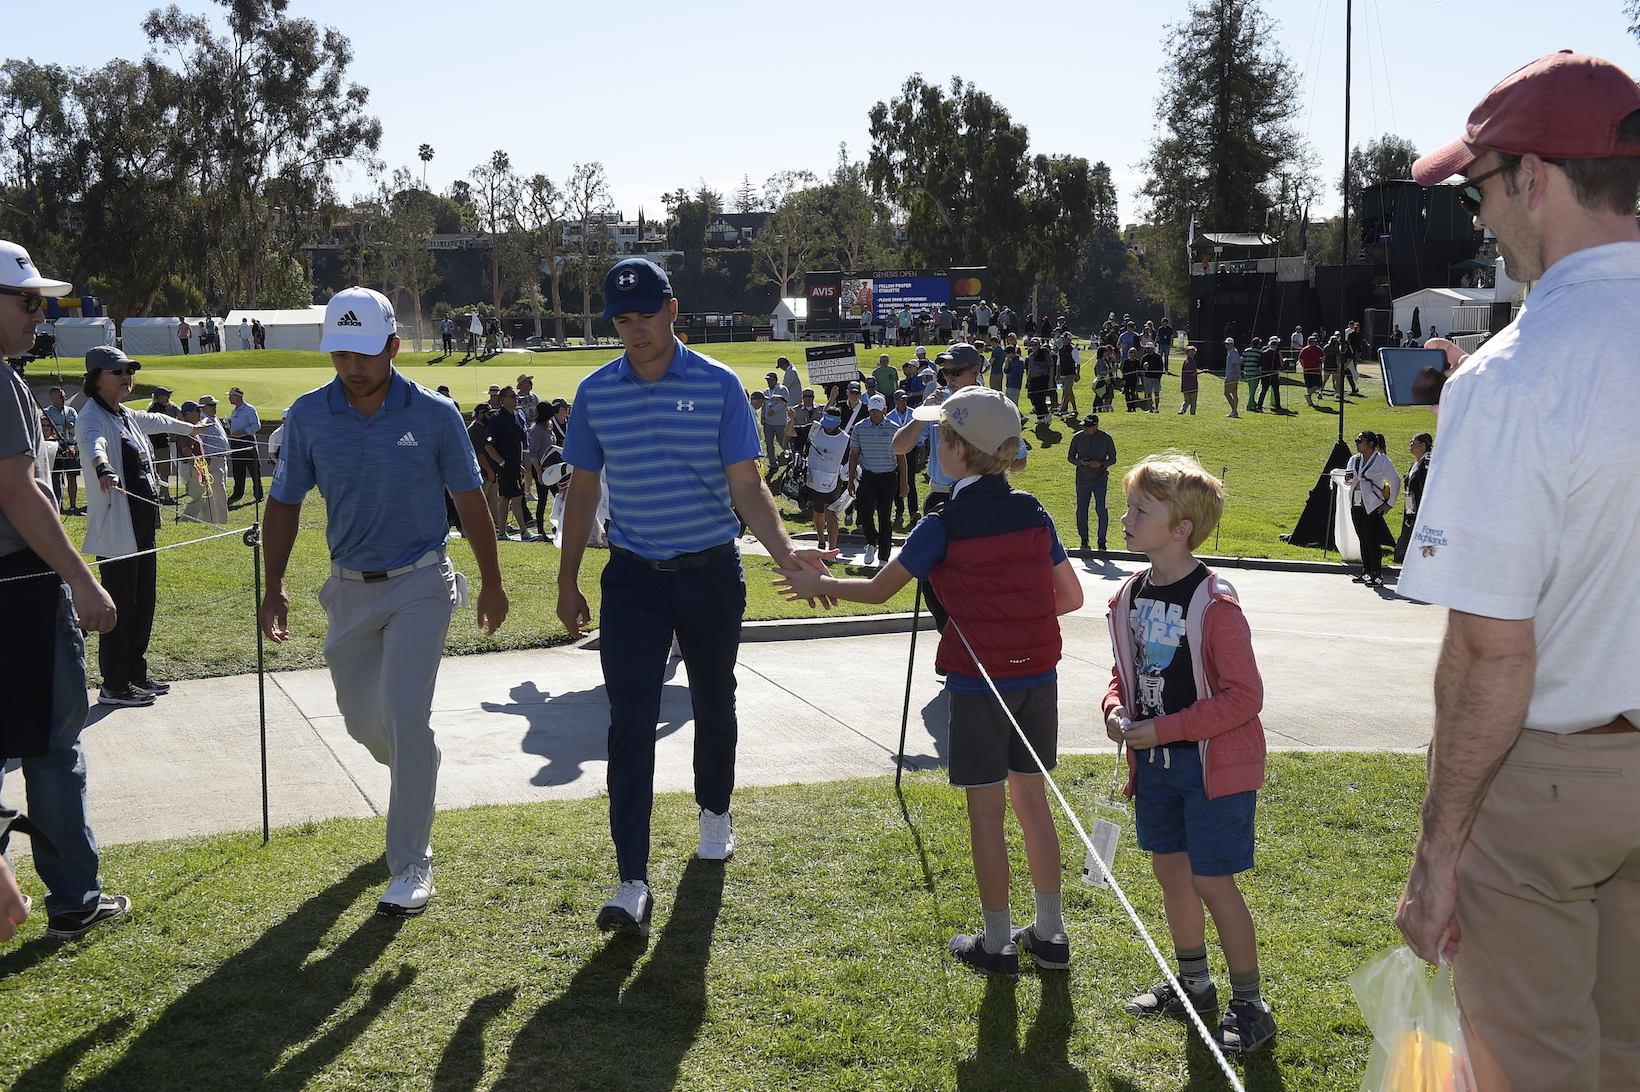 2018 Genesis Open: Round 3 - Xander Schauffele and Jordan Spieth With Fans on No. 3